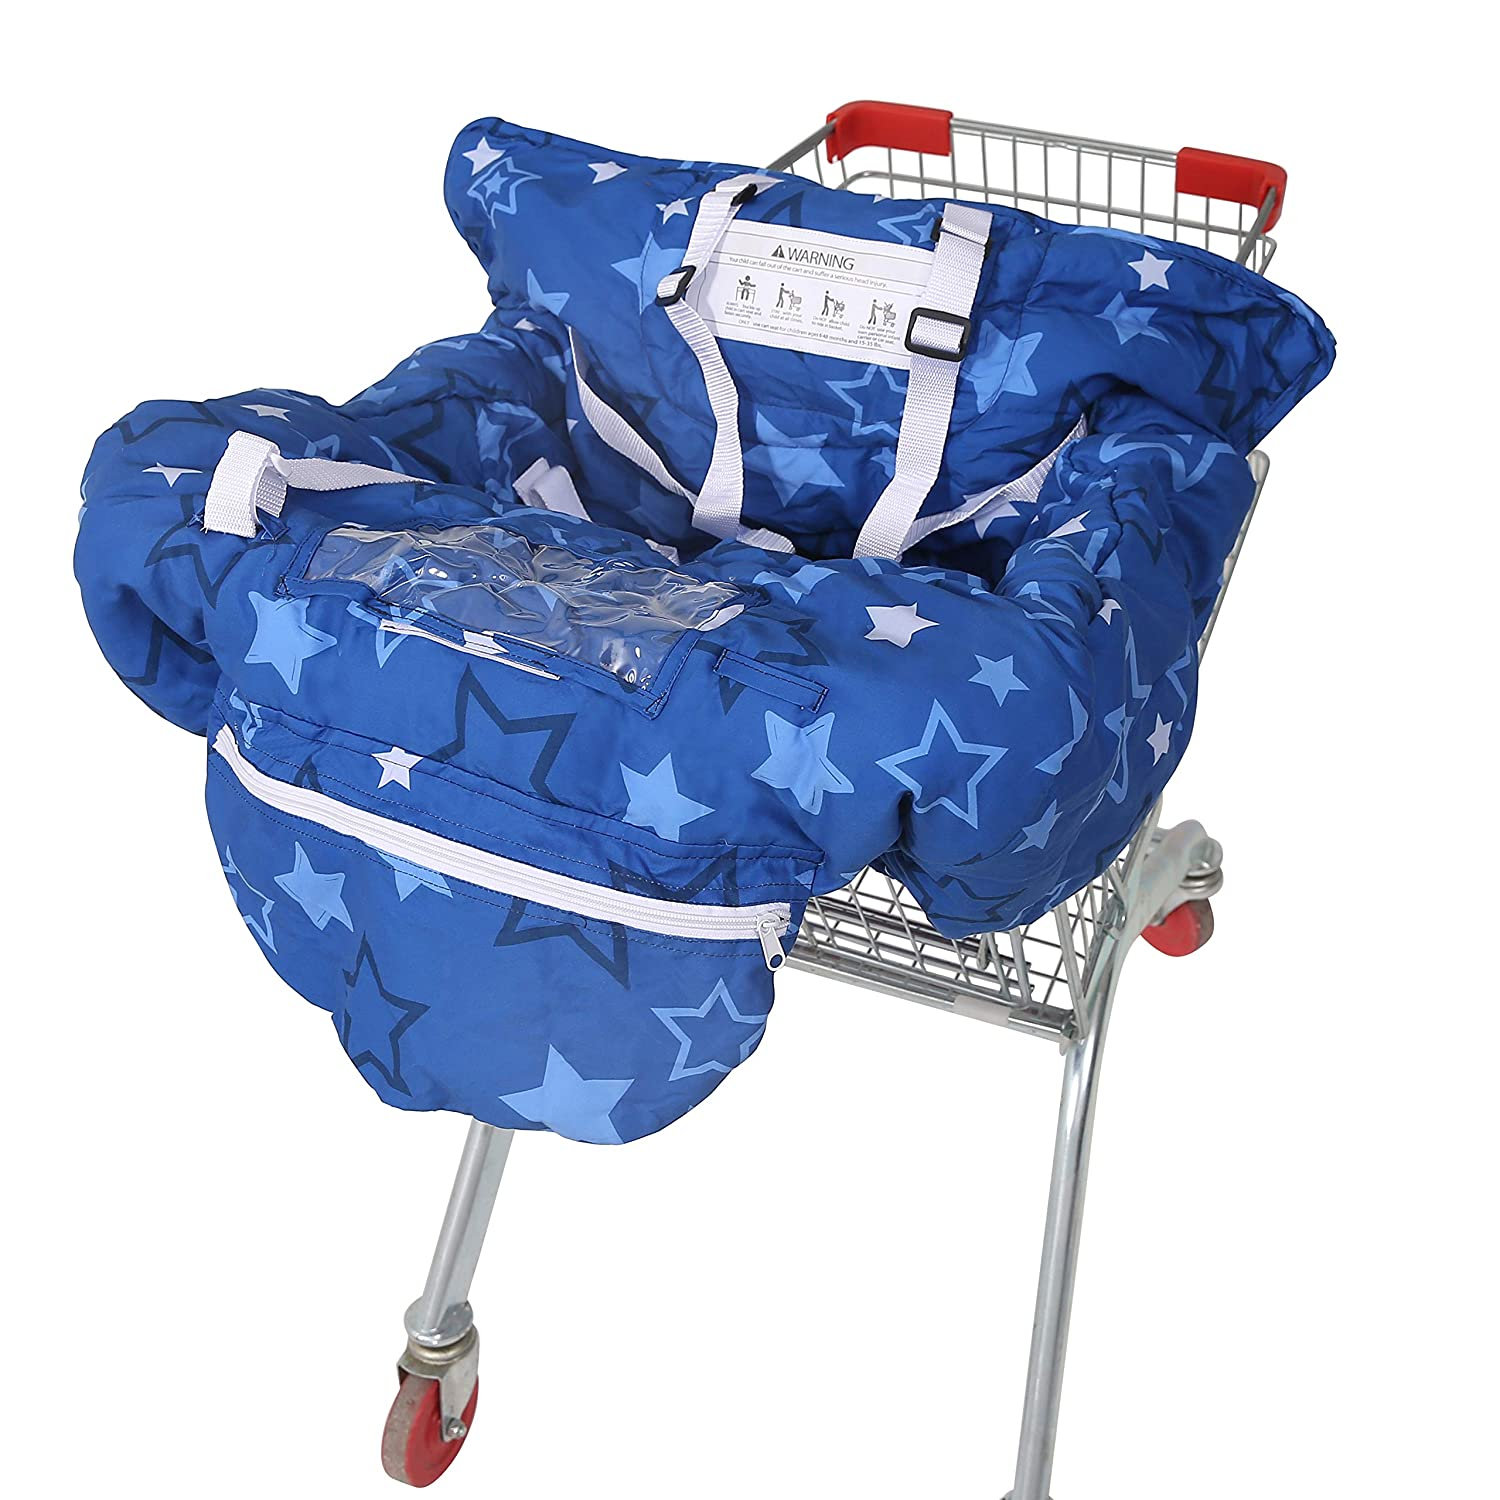 Blue Carry Bag Attached High Chair Cover for Baby and Toddler SDADI 2-in-1 Shopping Cart Cover Unisex for Boy or Girl